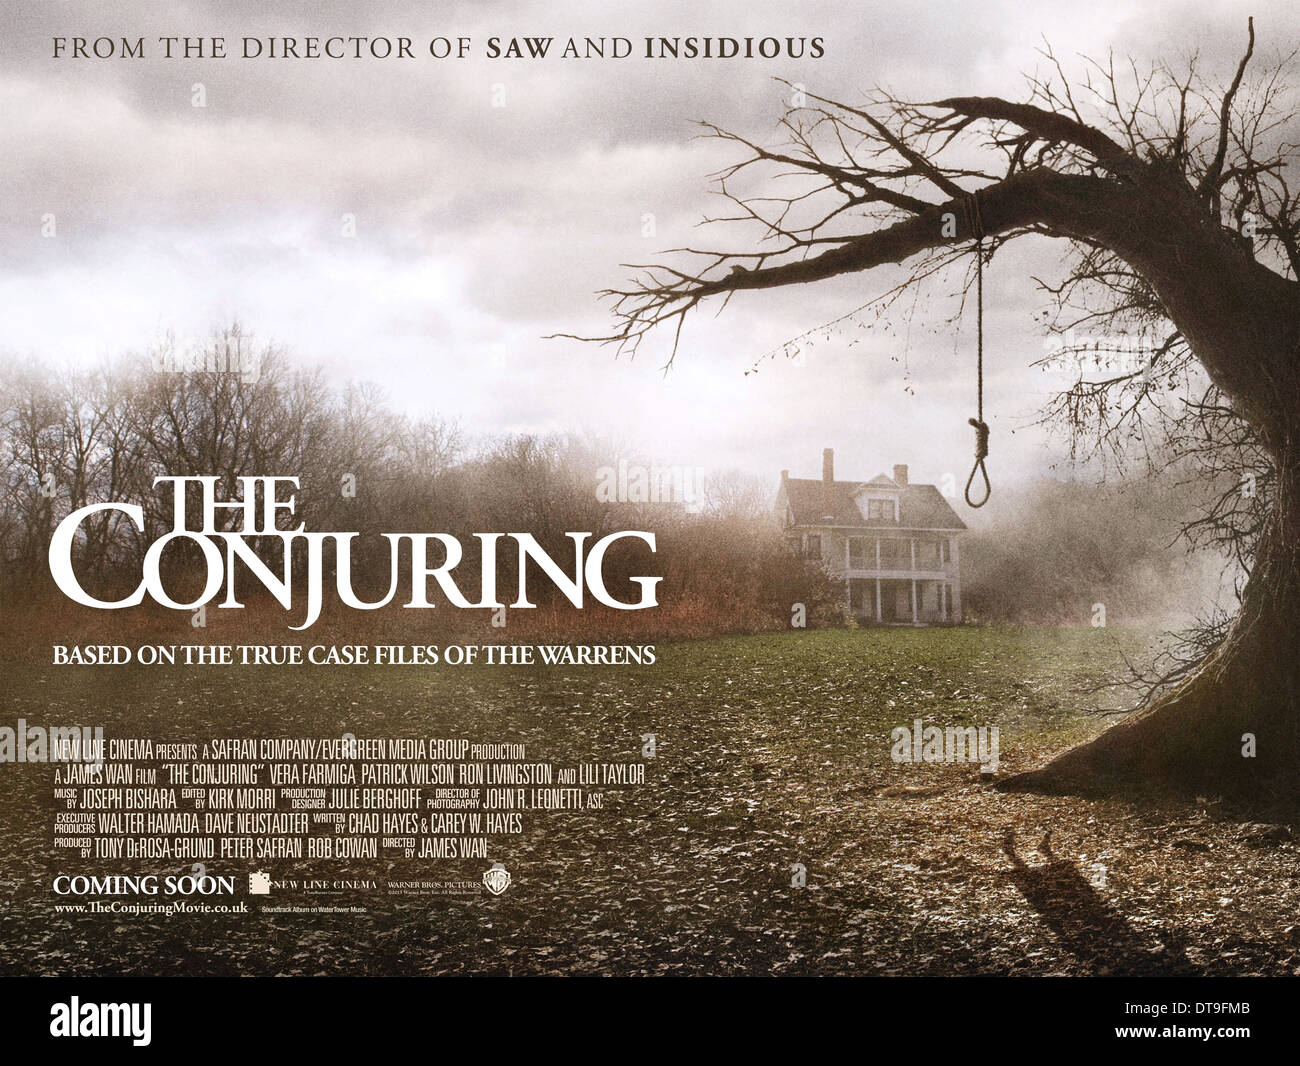 Movie Poster The Conjuring 2013 Stock Photo Alamy